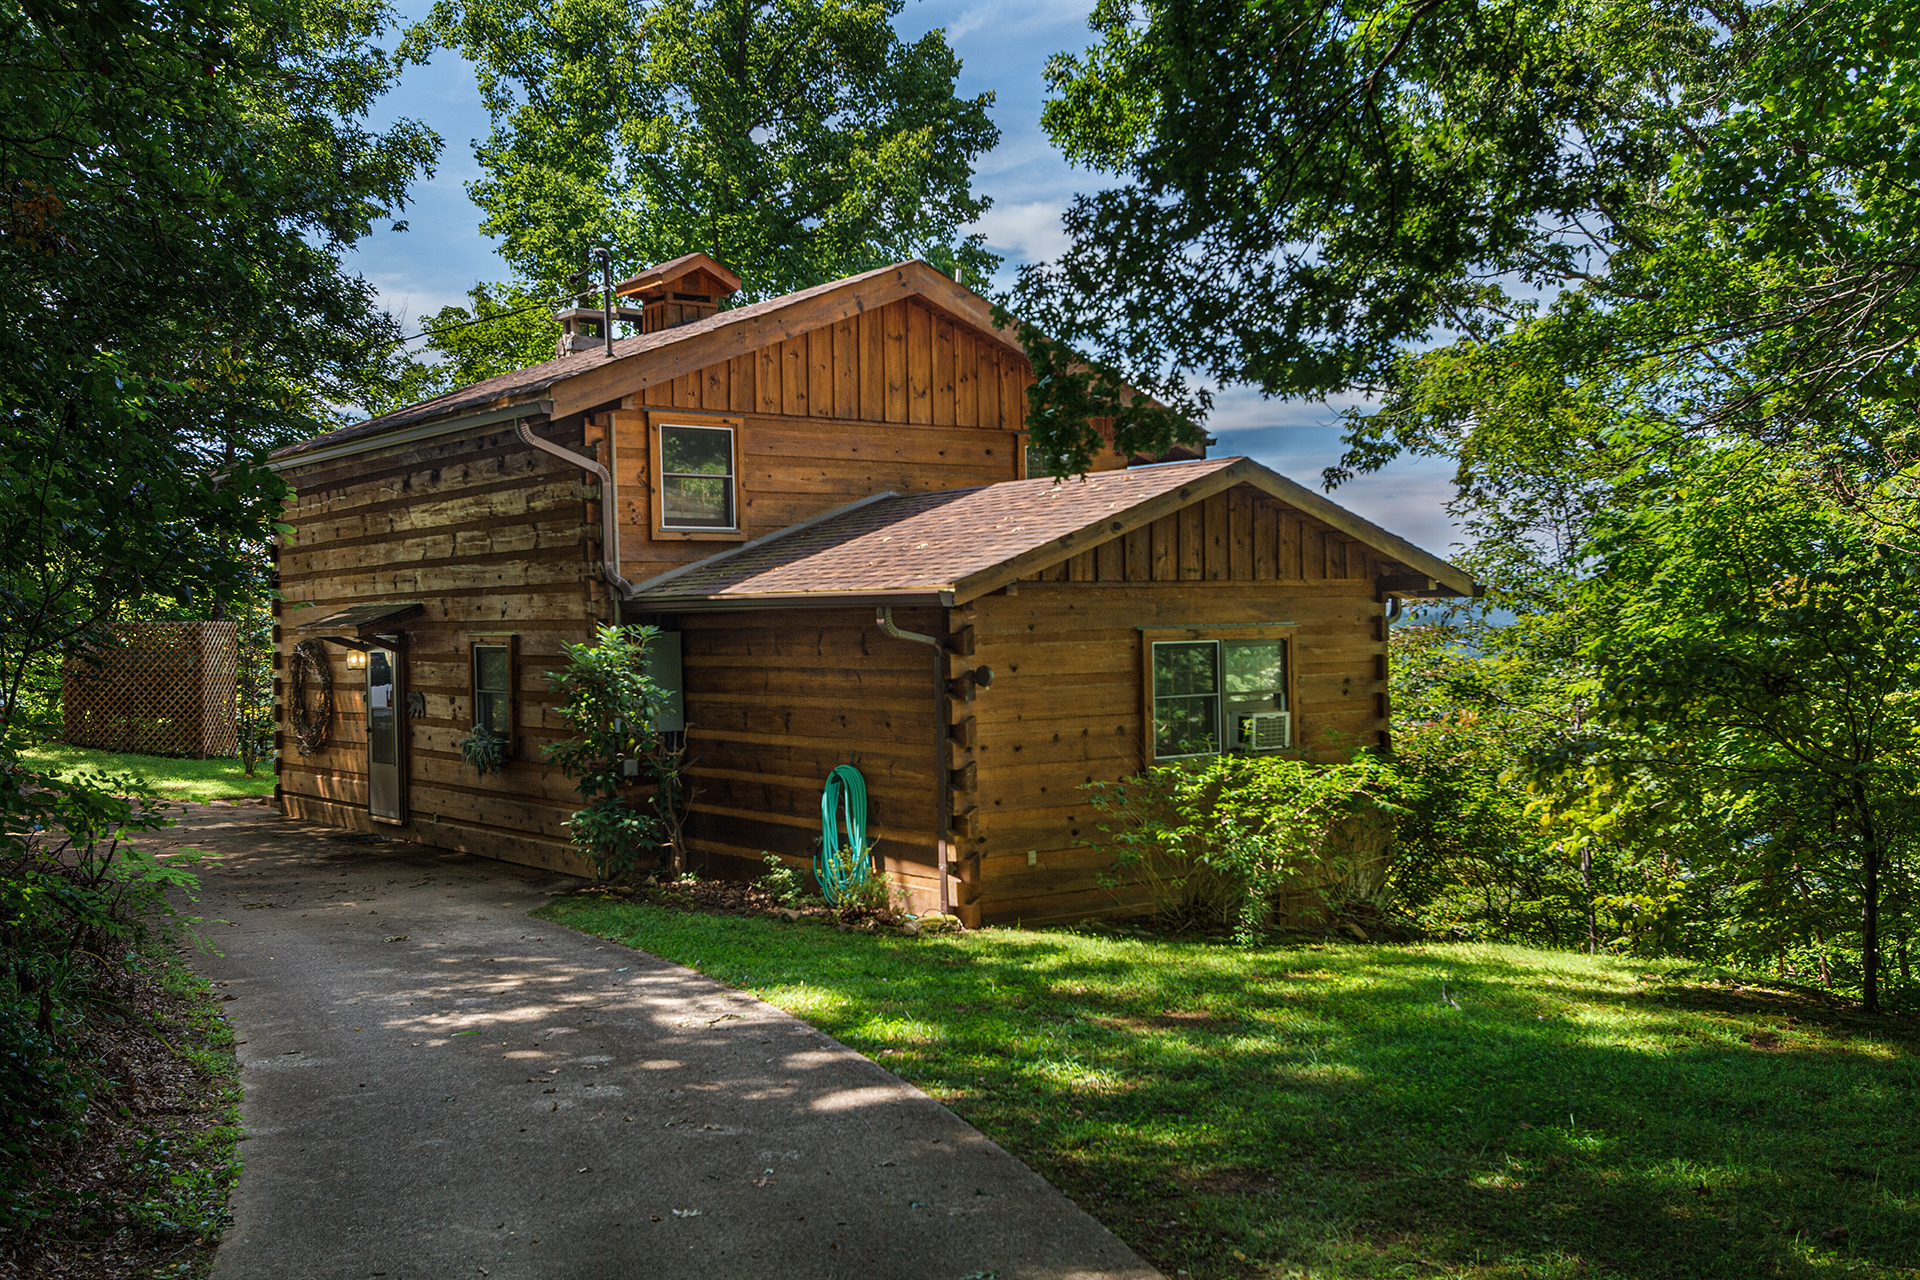 ccr cabins instant homes banner cabin nc beech a and lodging boone country condos in the selection rock elk grandfather photos mountain offering blowing vacation rental large quotes rentals chalets high lots of